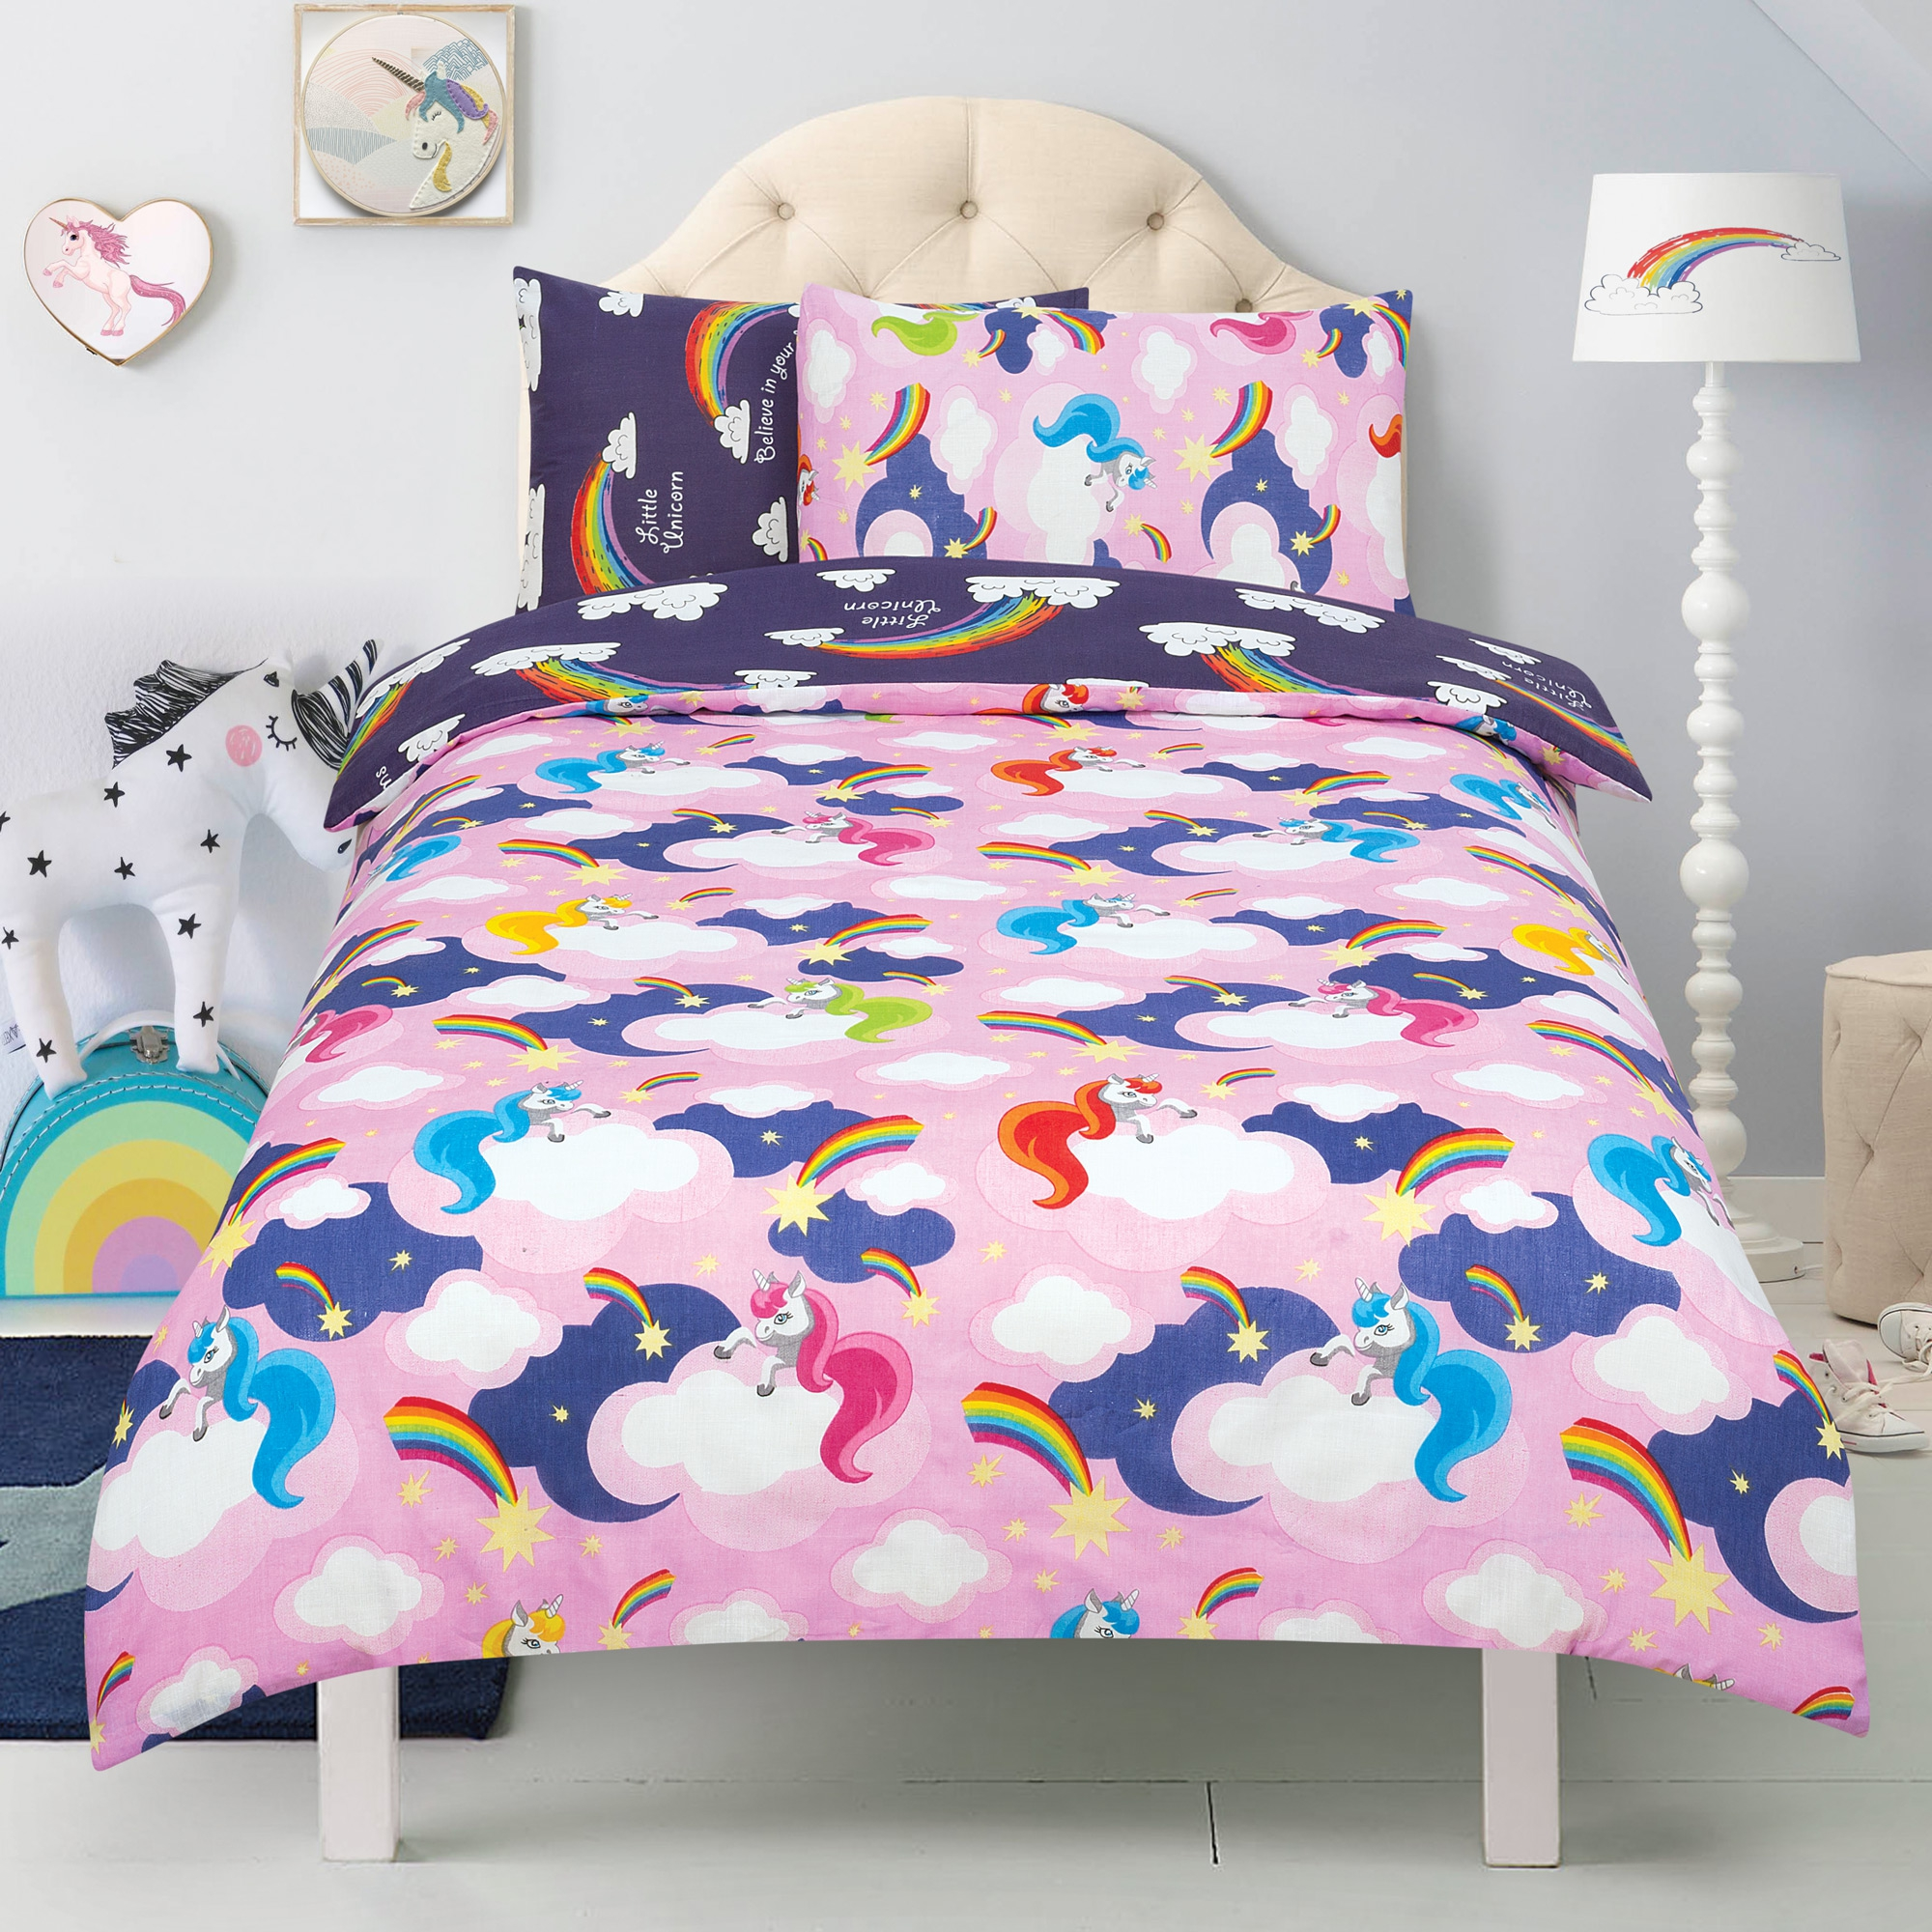 Unicorn 'Believe In Your Dreams' Baby Pink Reversible Purple Rotary Double Bed Duvet Quilt Cover Se